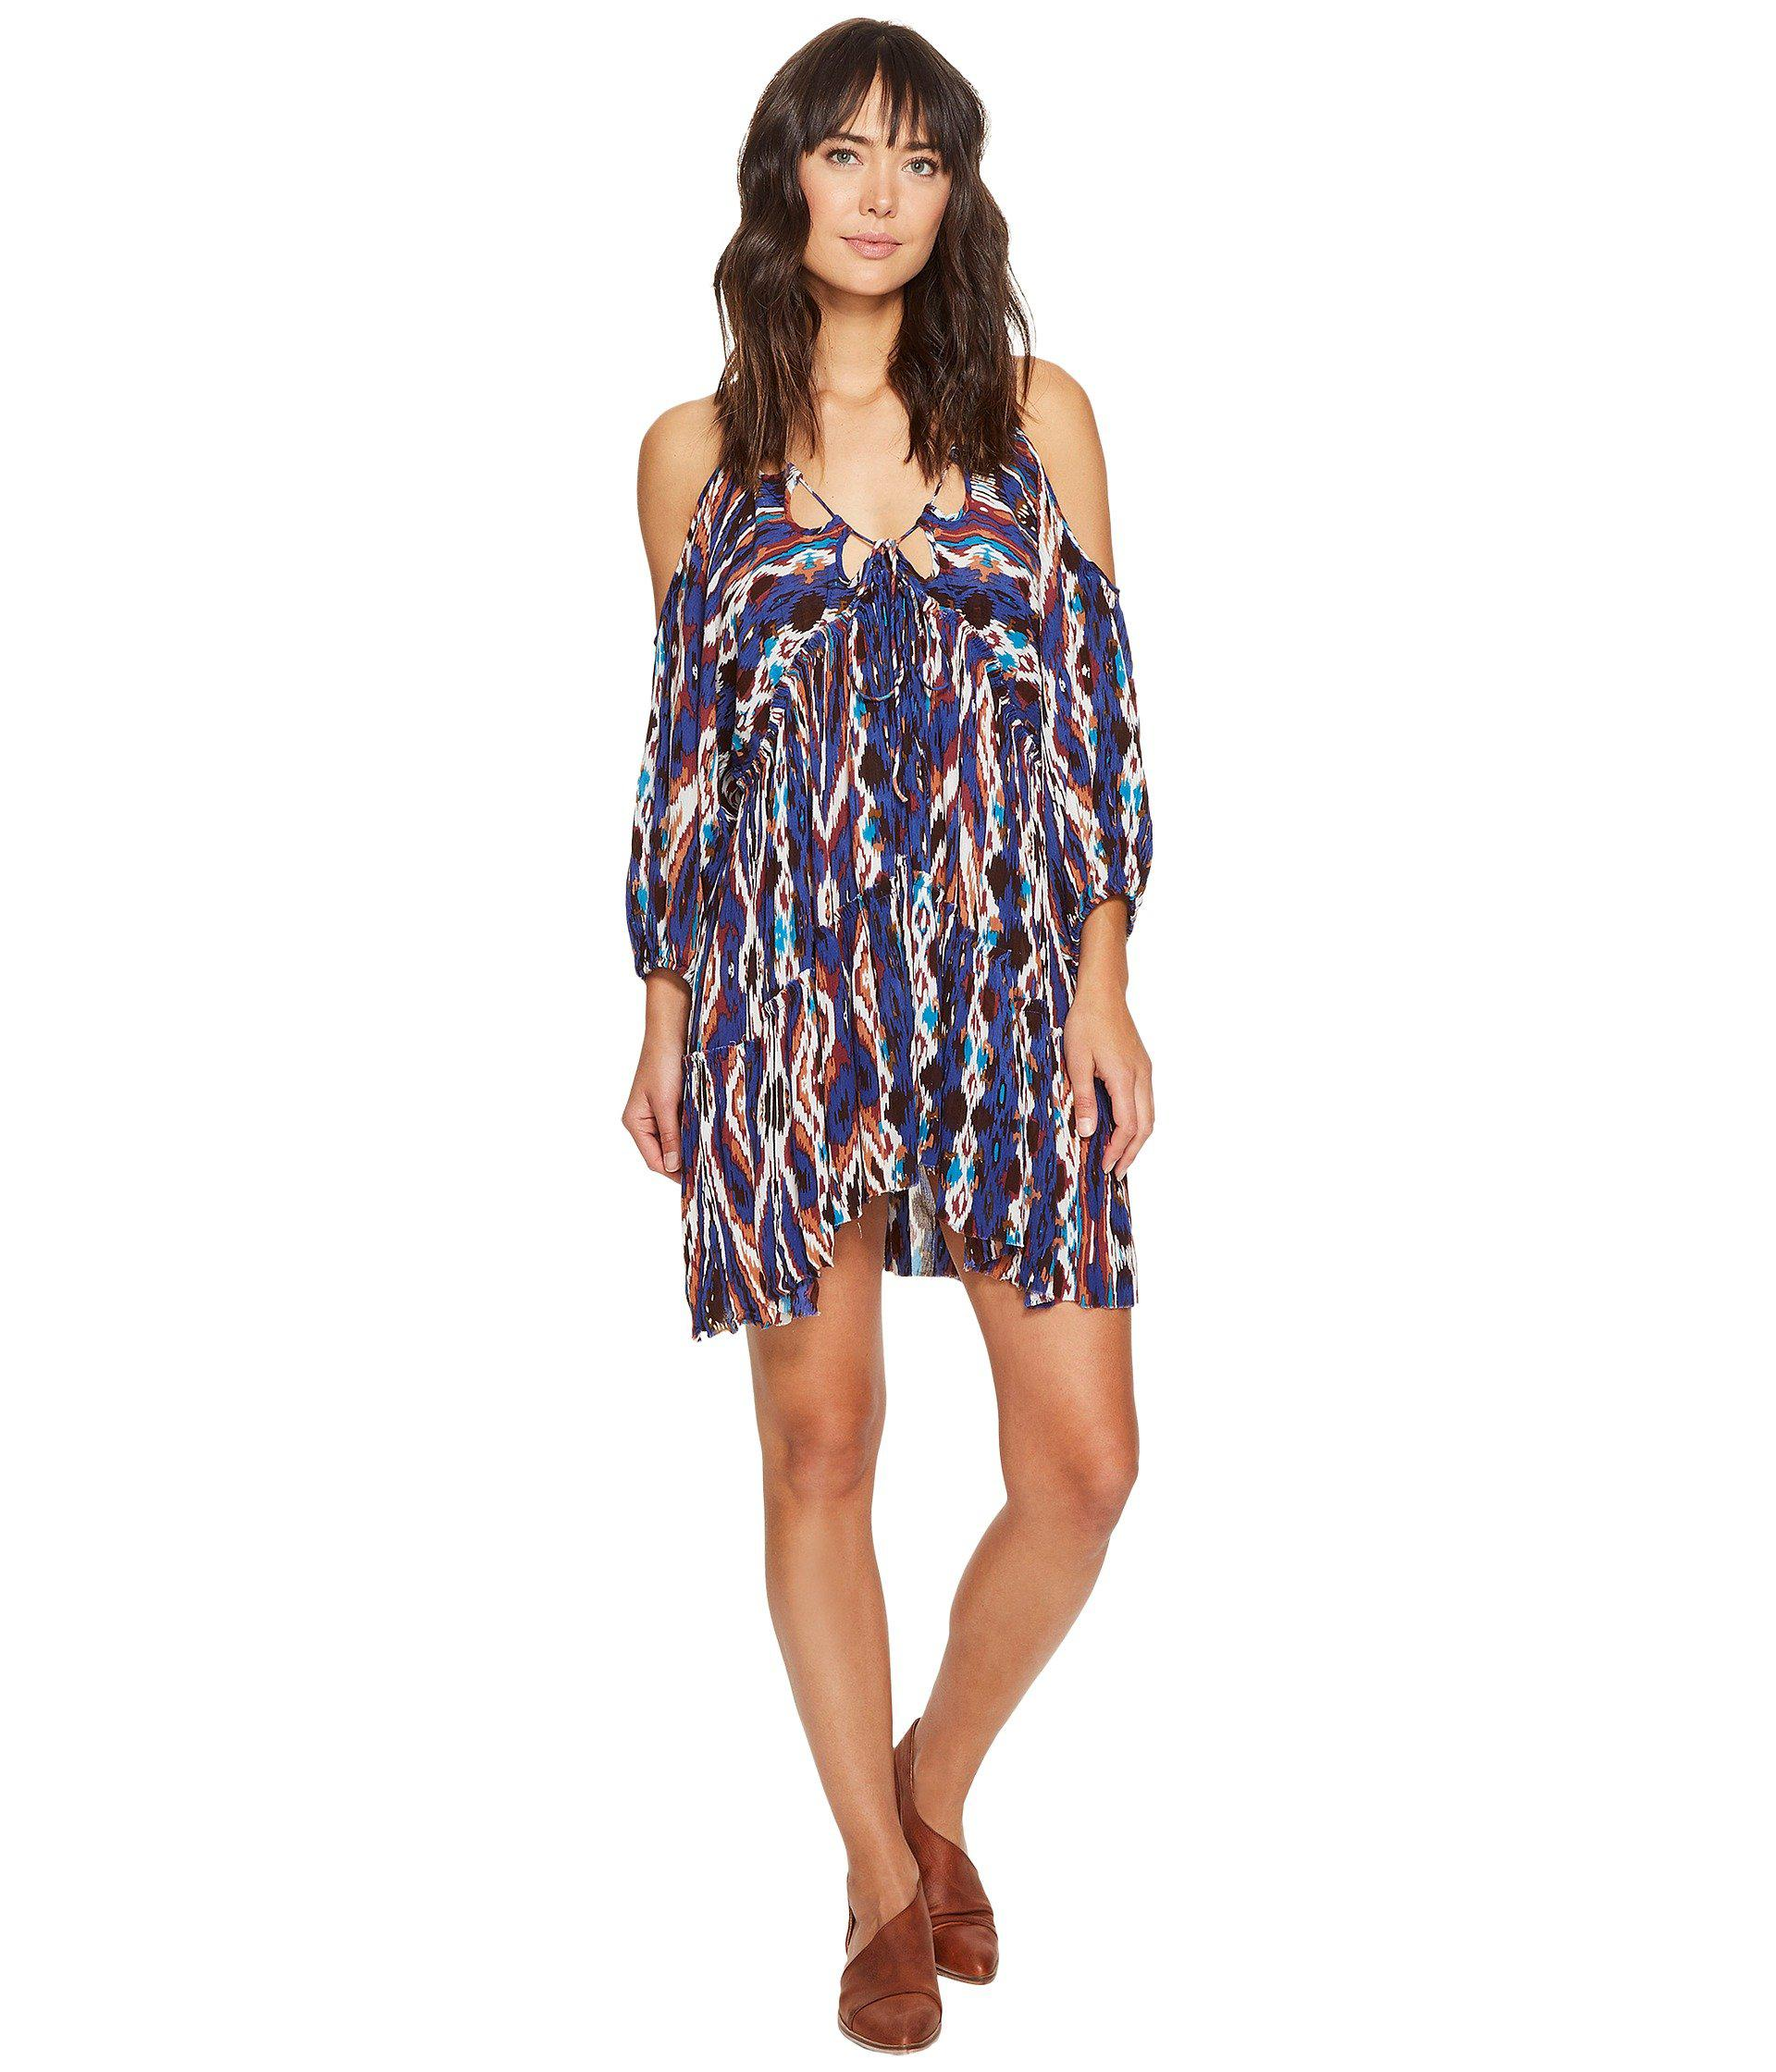 51090ae9a689 Free People Monarch Mini Dress in Blue - Lyst